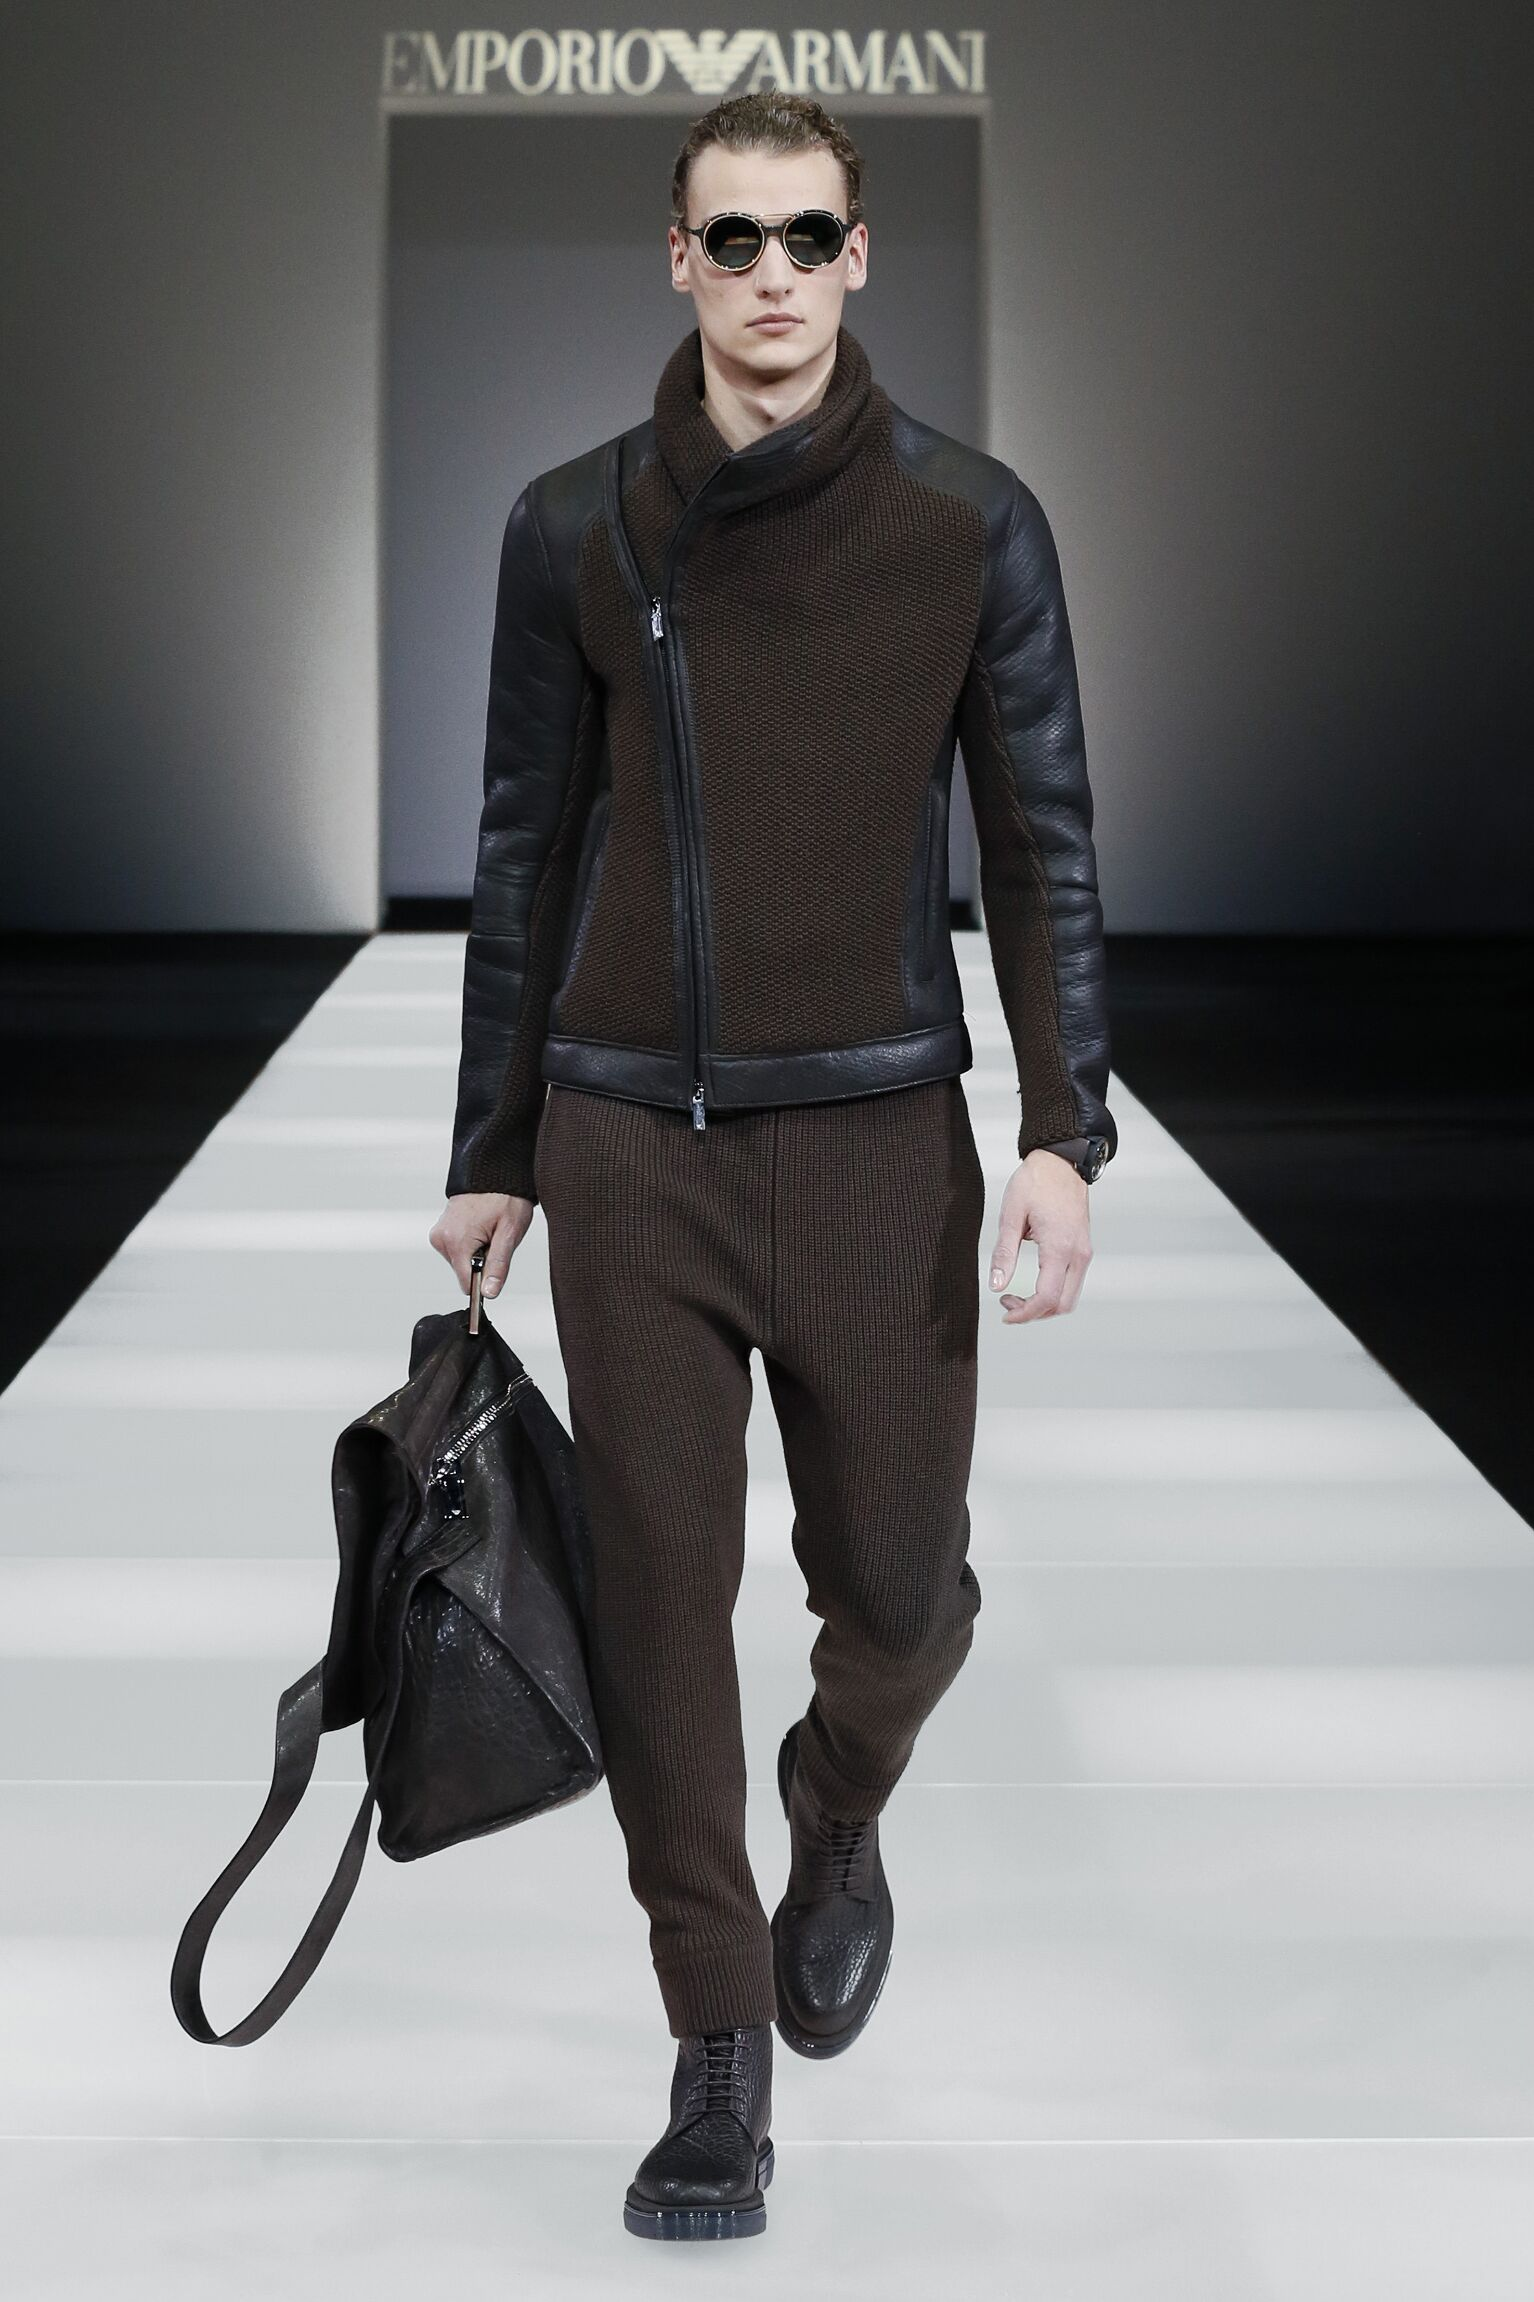 Emporio Armani Fall Winter 2015 16 Mens Collection Milano Fashion Week